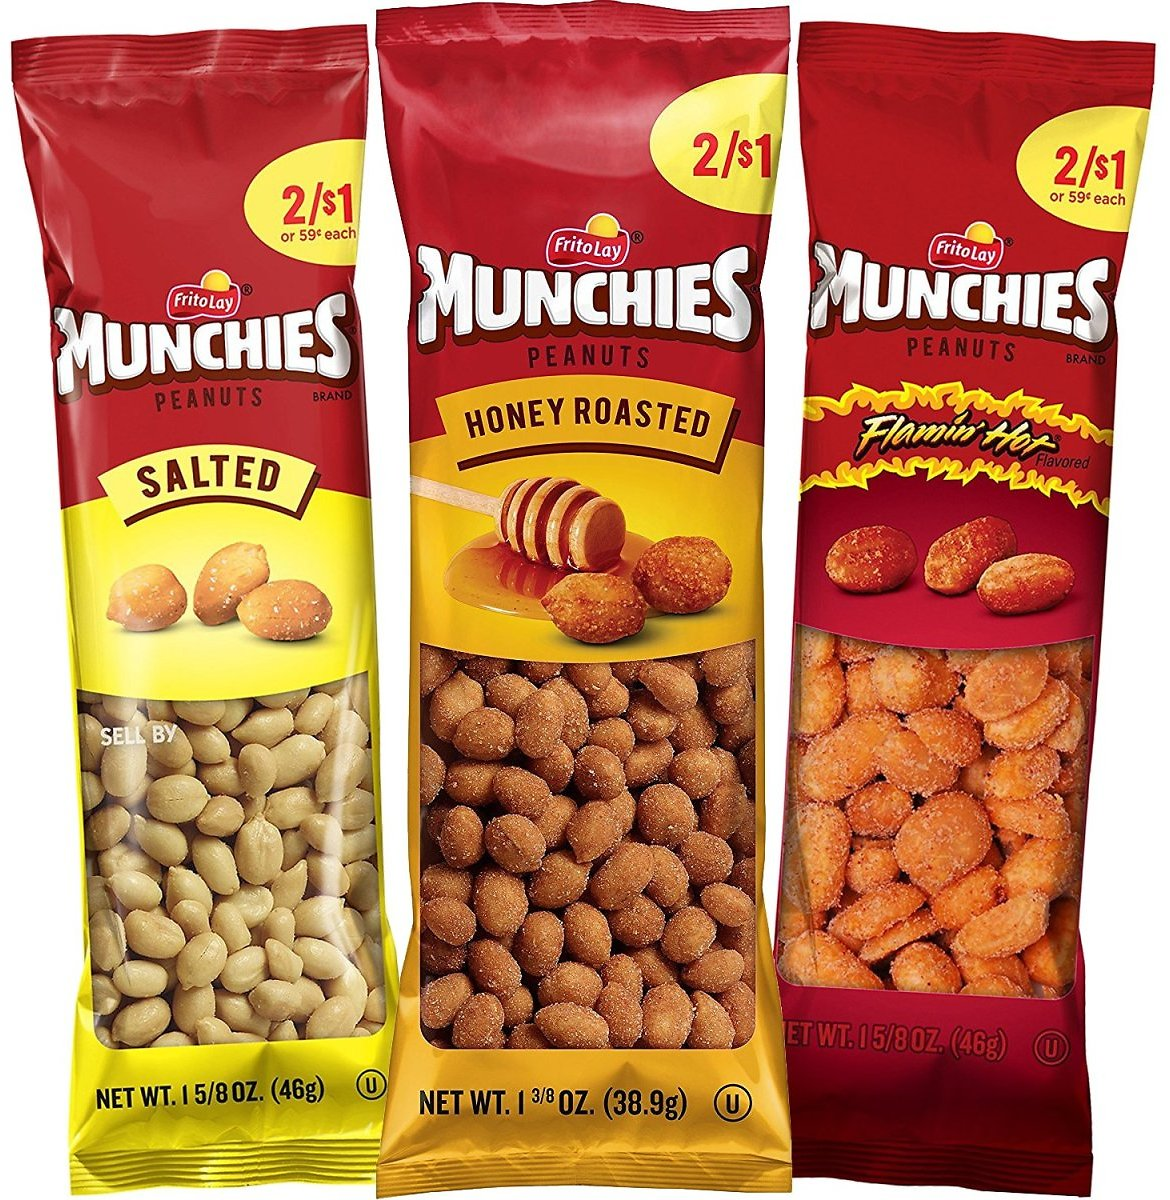 36 Count Munchies Peanut Variety Pack (Salted, Flamin' Hot, Honey Roasted)